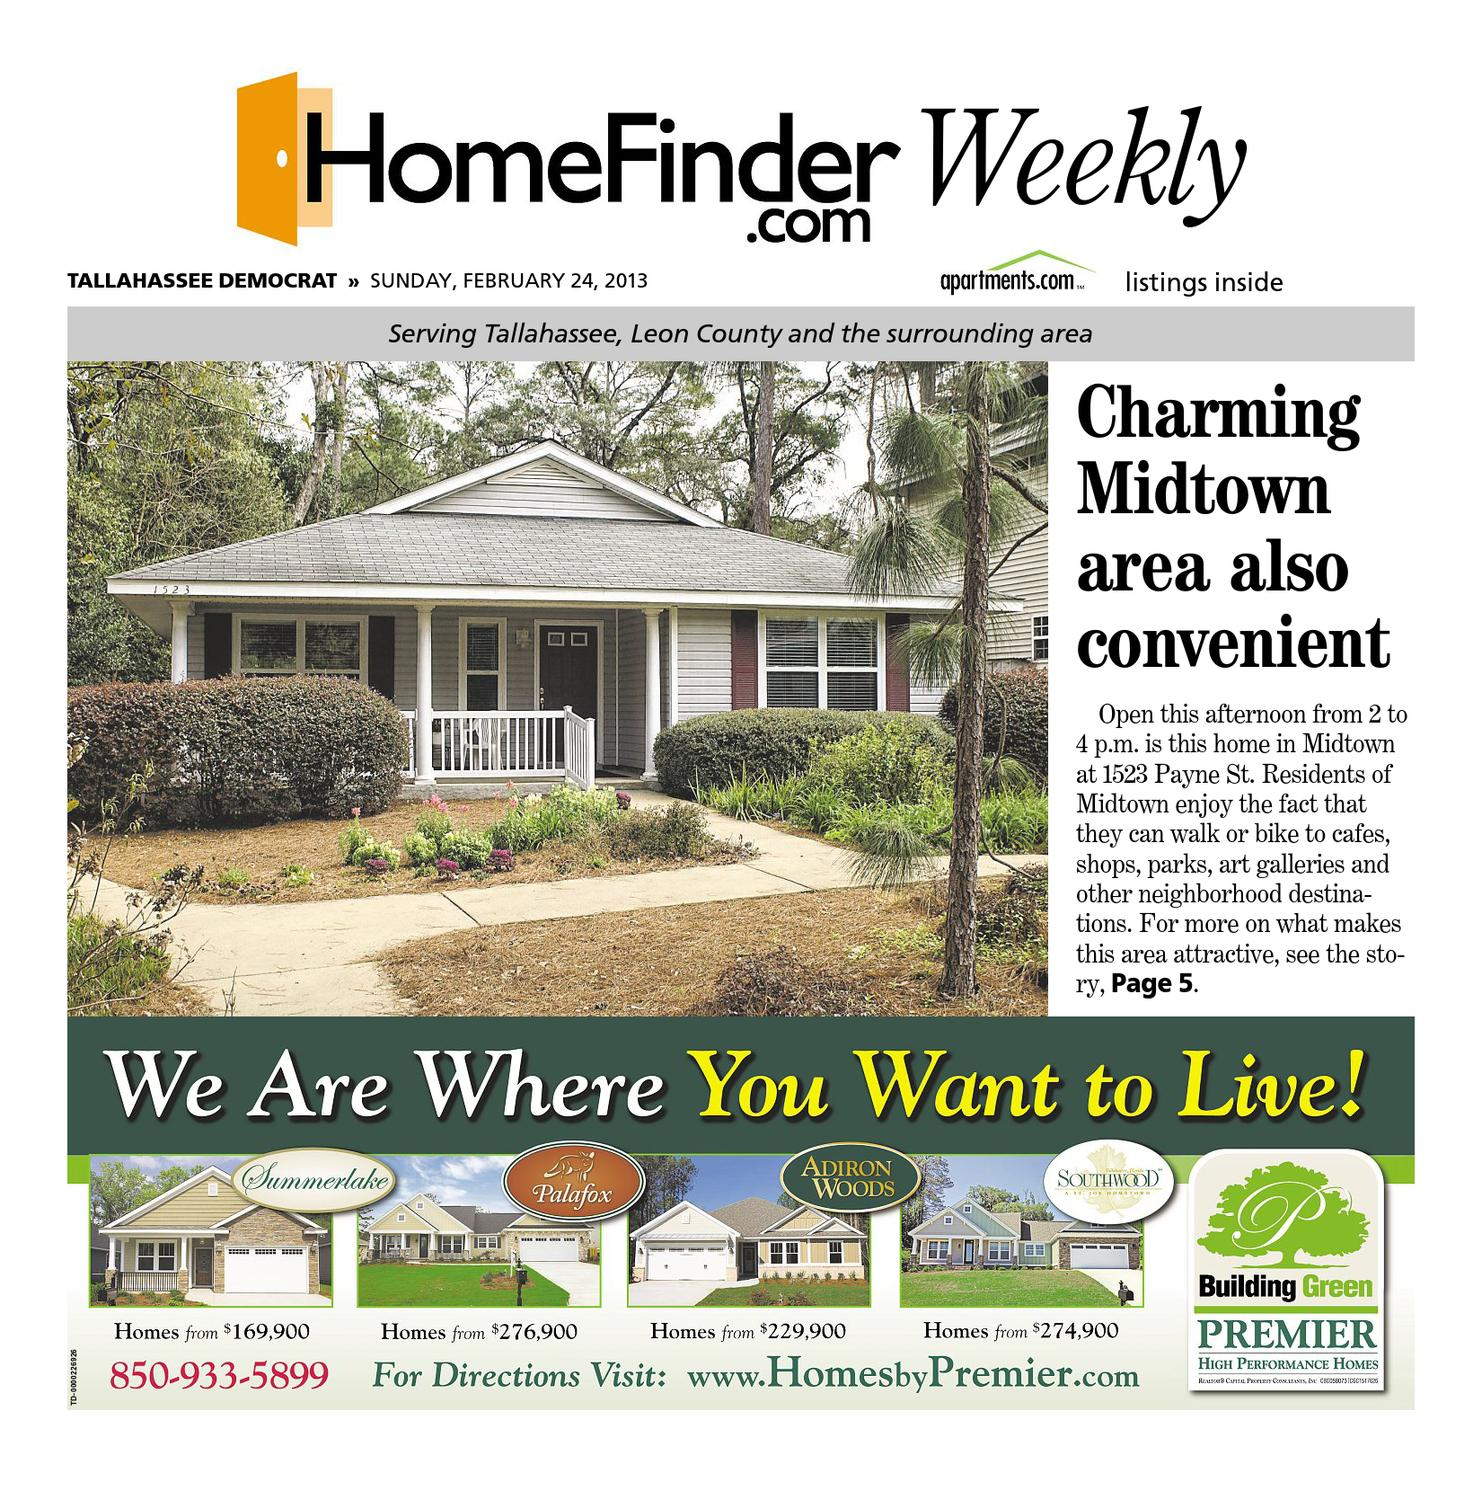 Home Finder For Rent: Homefinder.com Weekly By Tallahassee Democrat